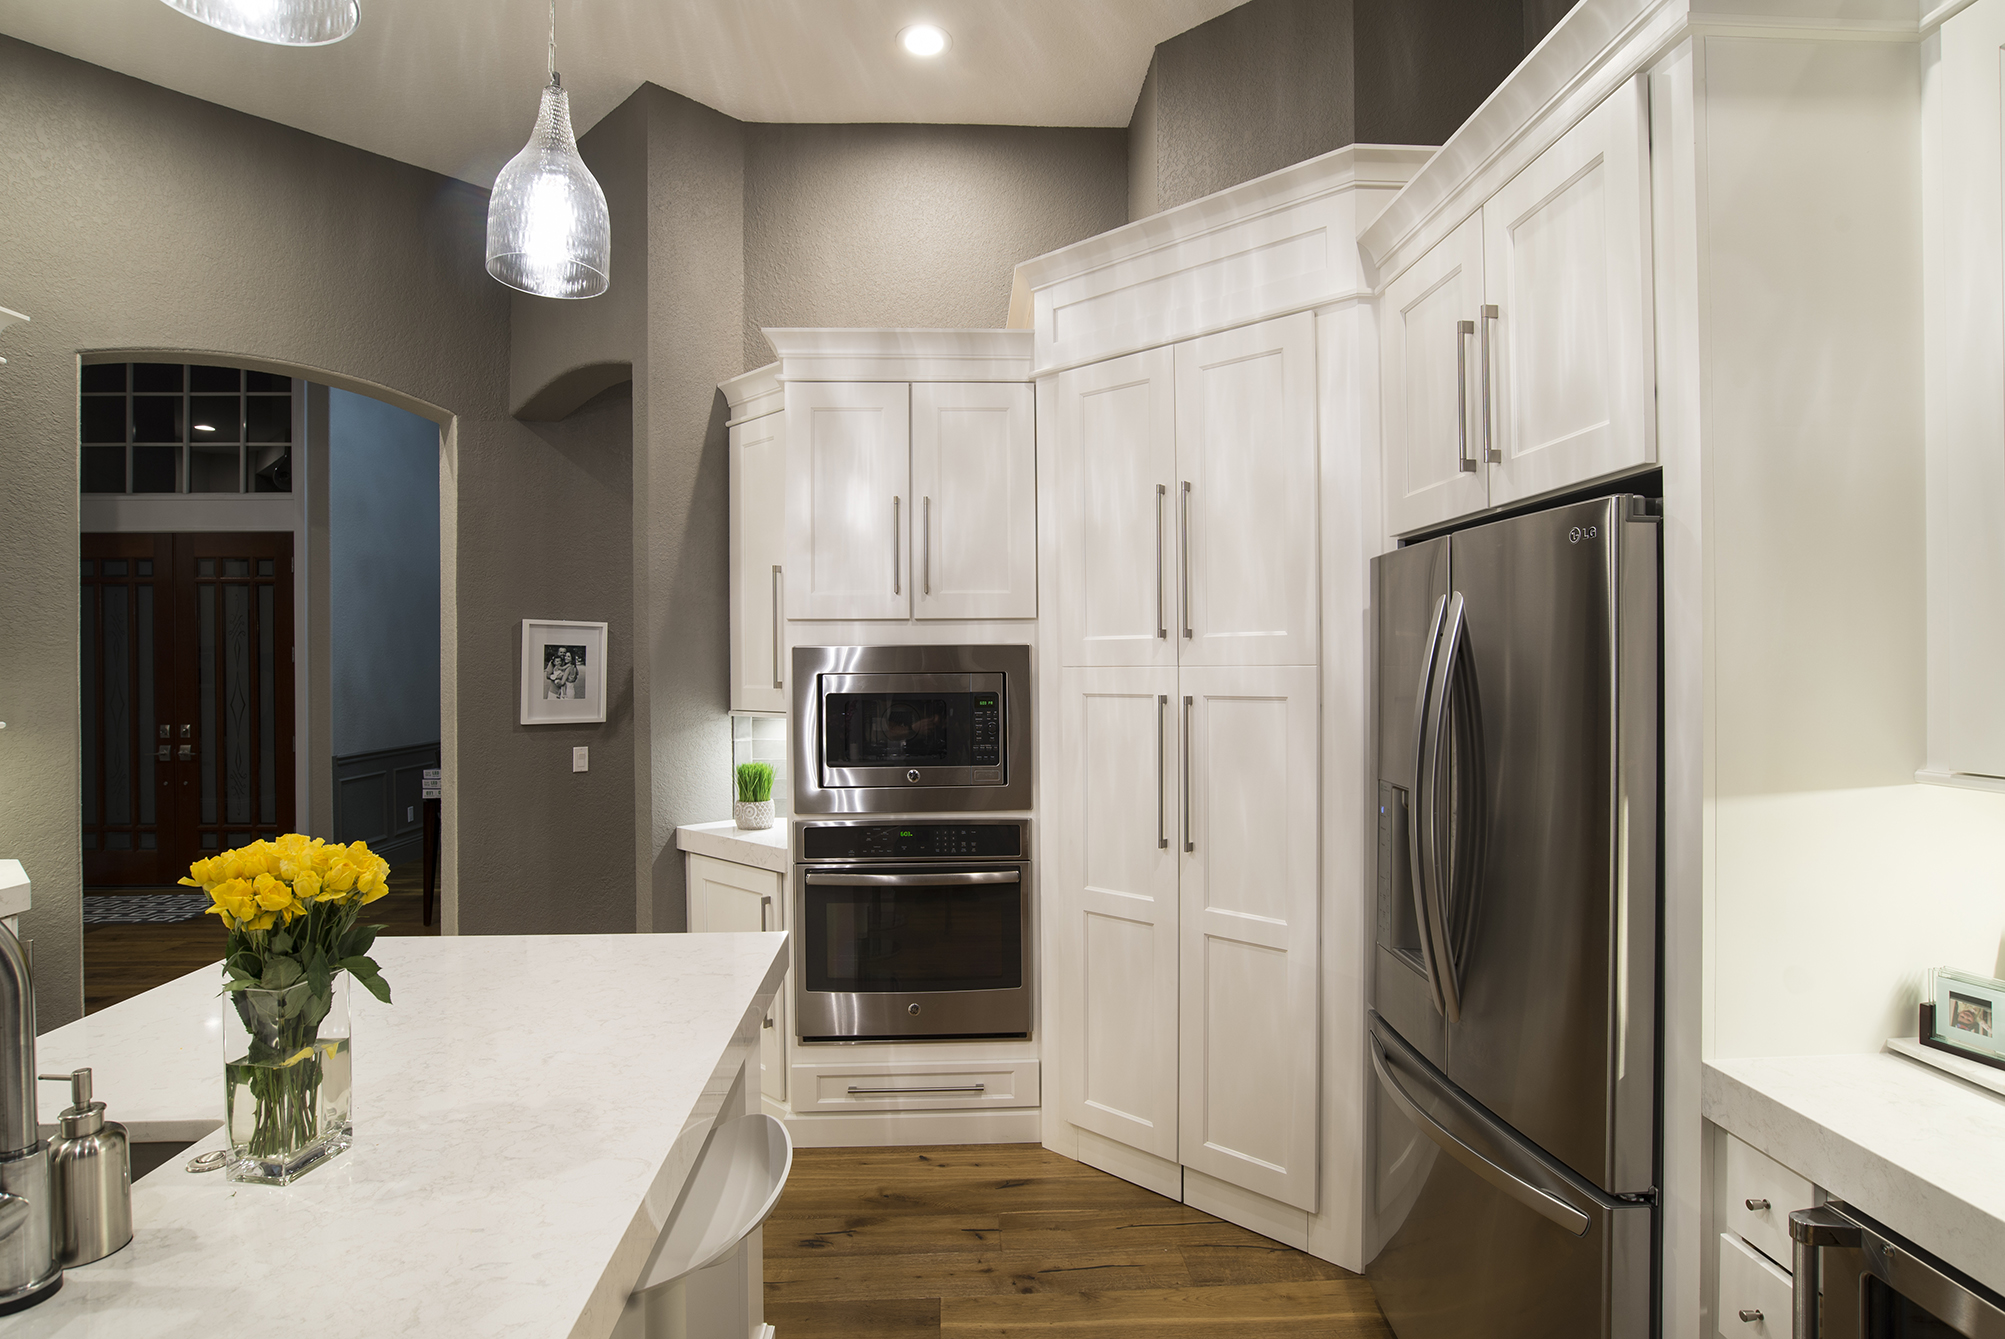 Kitchen Remodeling Contractor in Orlando